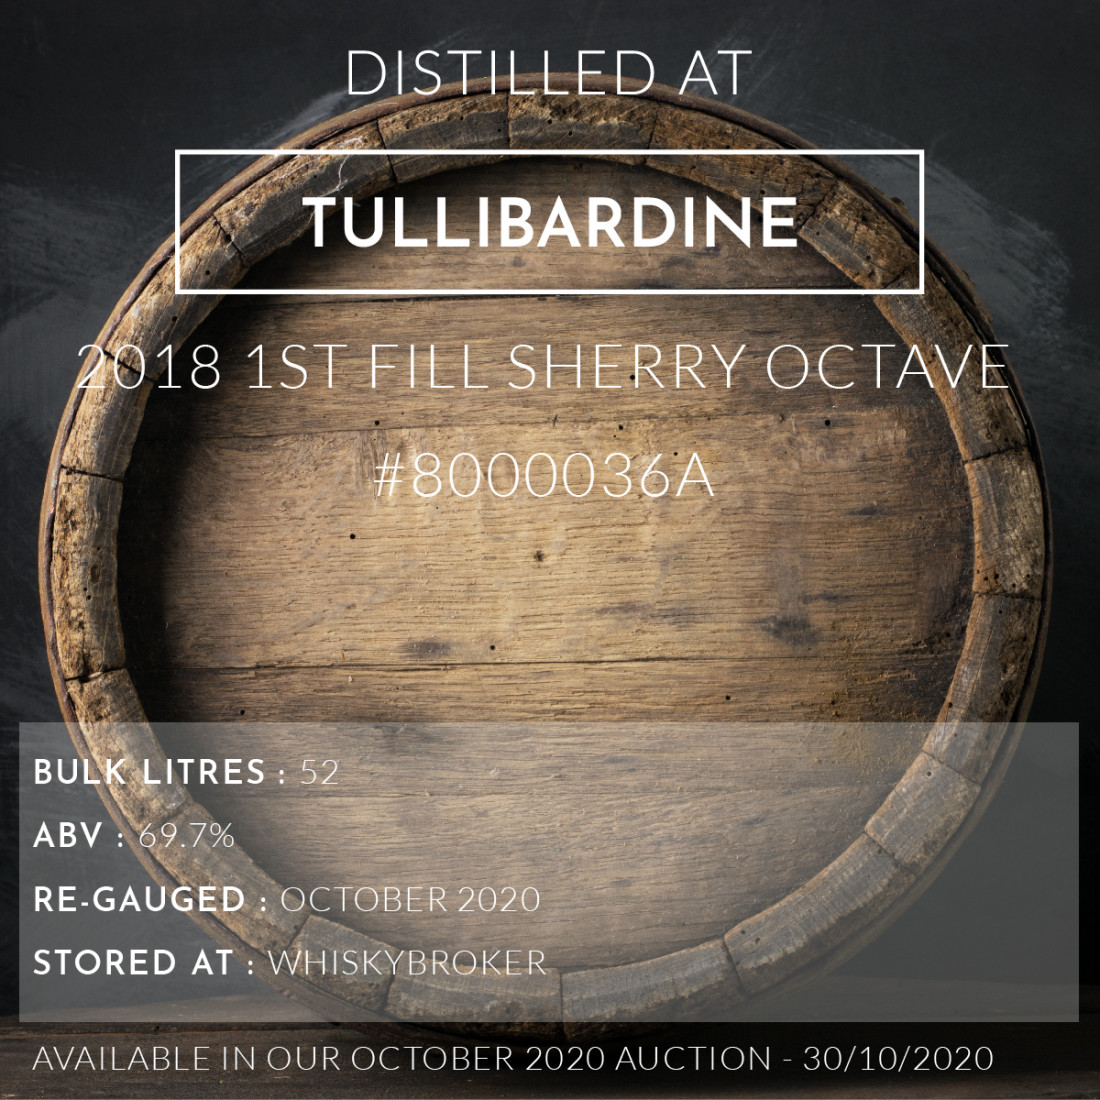 1 Tullibardine 2018 1st Fill Sherry Octave #8000036A / Cask in storage at Whiskybroker